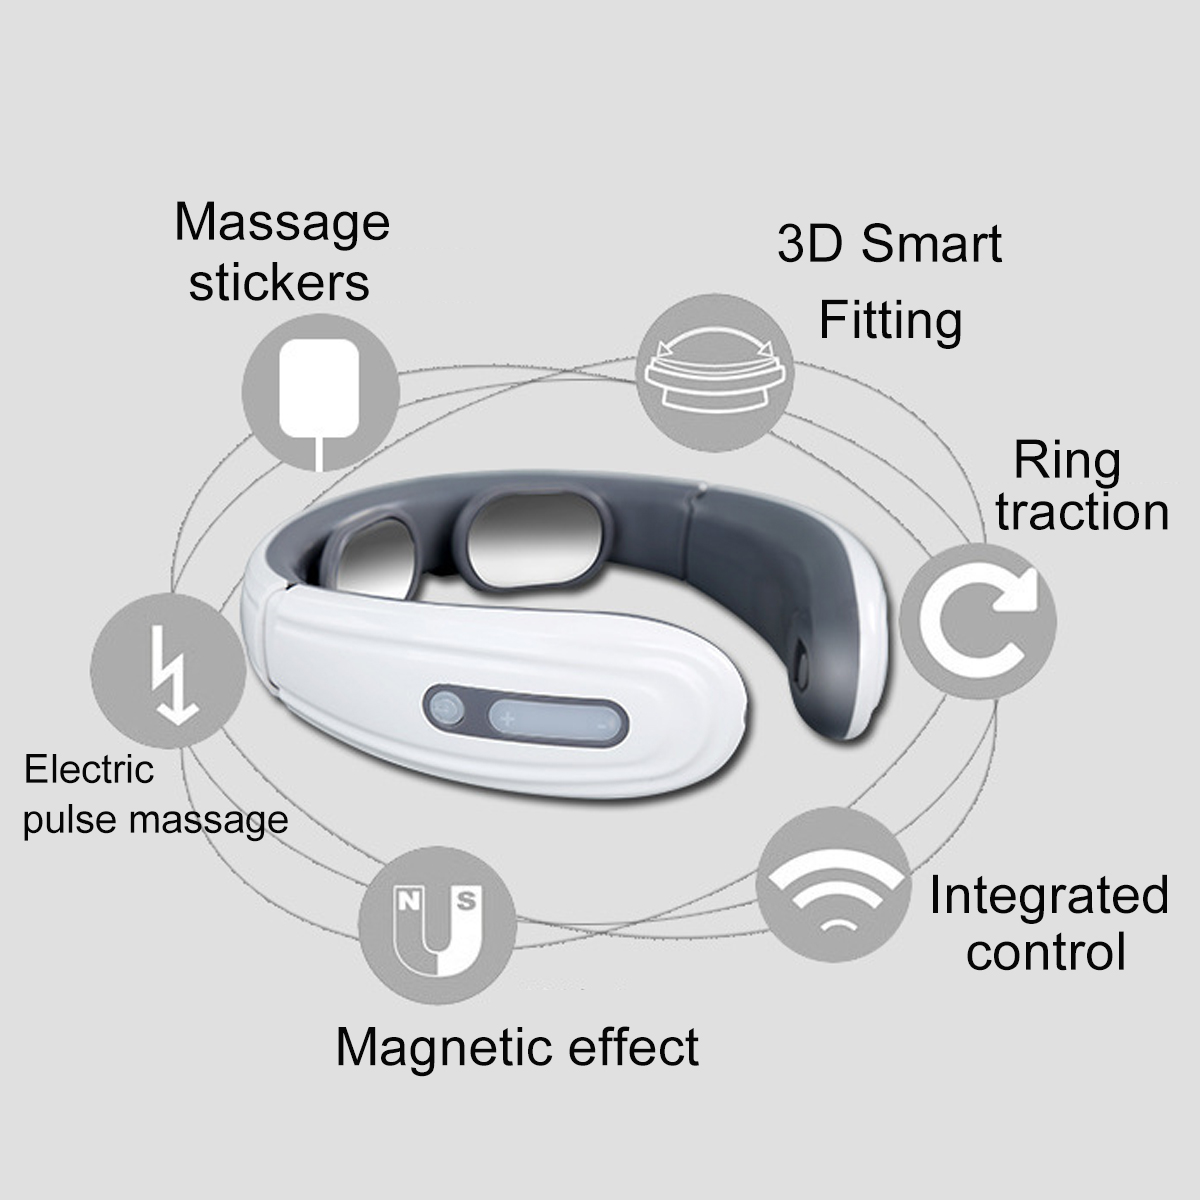 15 Gear Smart Viabration Neck Cervical Pain Relief Massager Electromagnetic Shock Massage With Far Infrared Heating Electric Massager